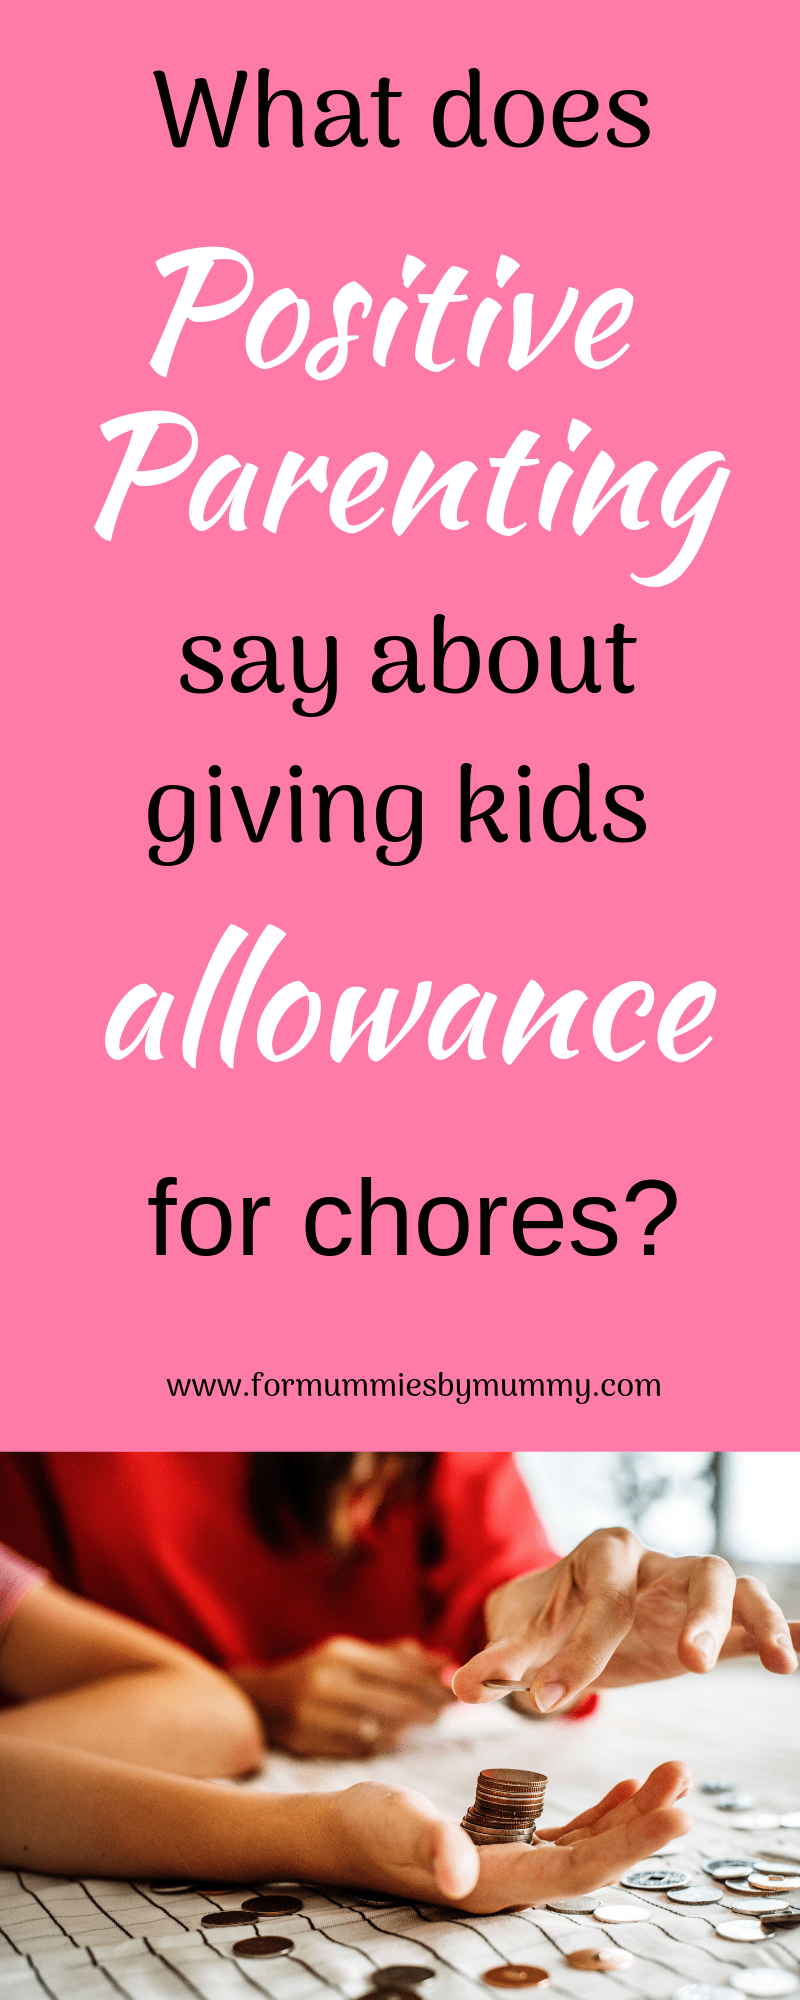 why parents shouldn't give their children allowance for doing chores. #positiveparenting #family #busymoms #kidsallowance